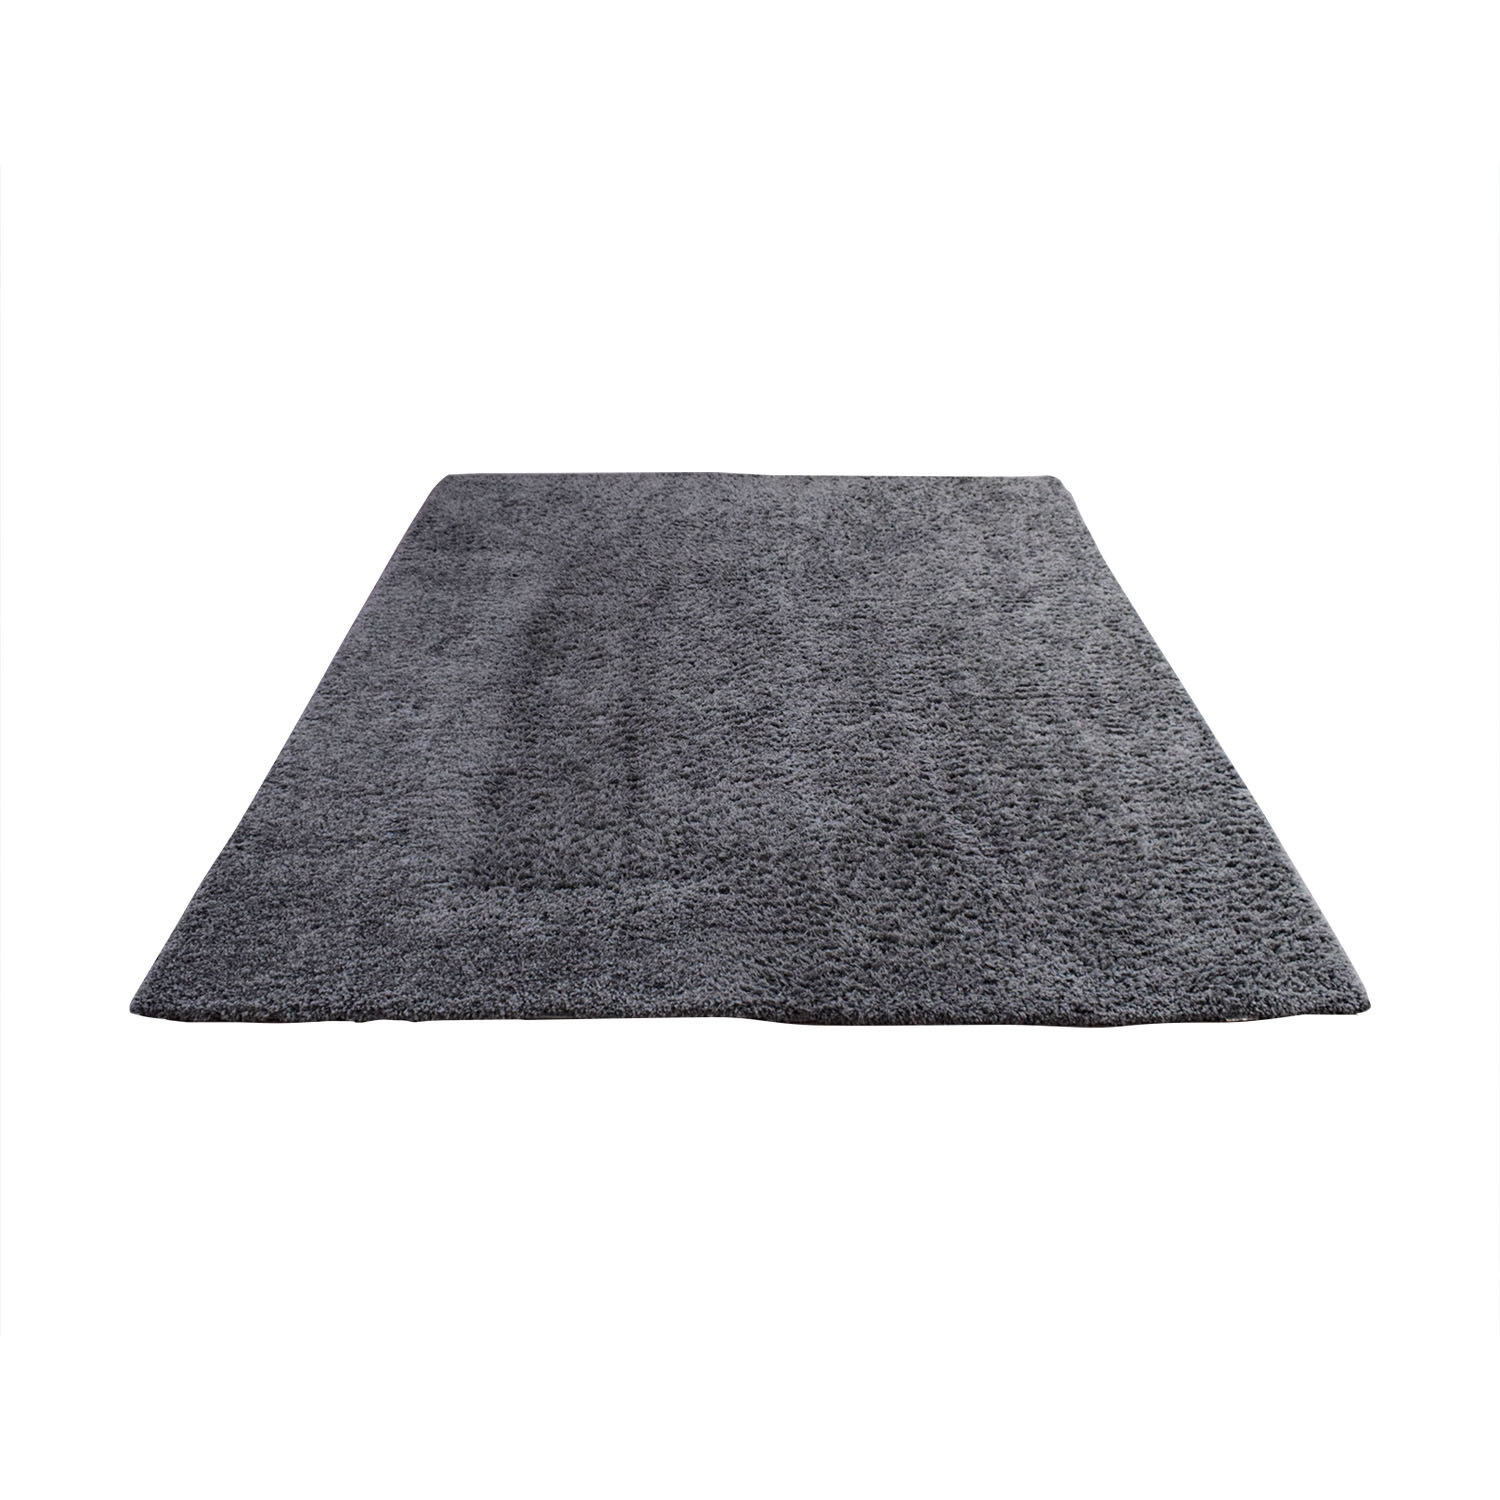 Shaggy Area Rug dimensions